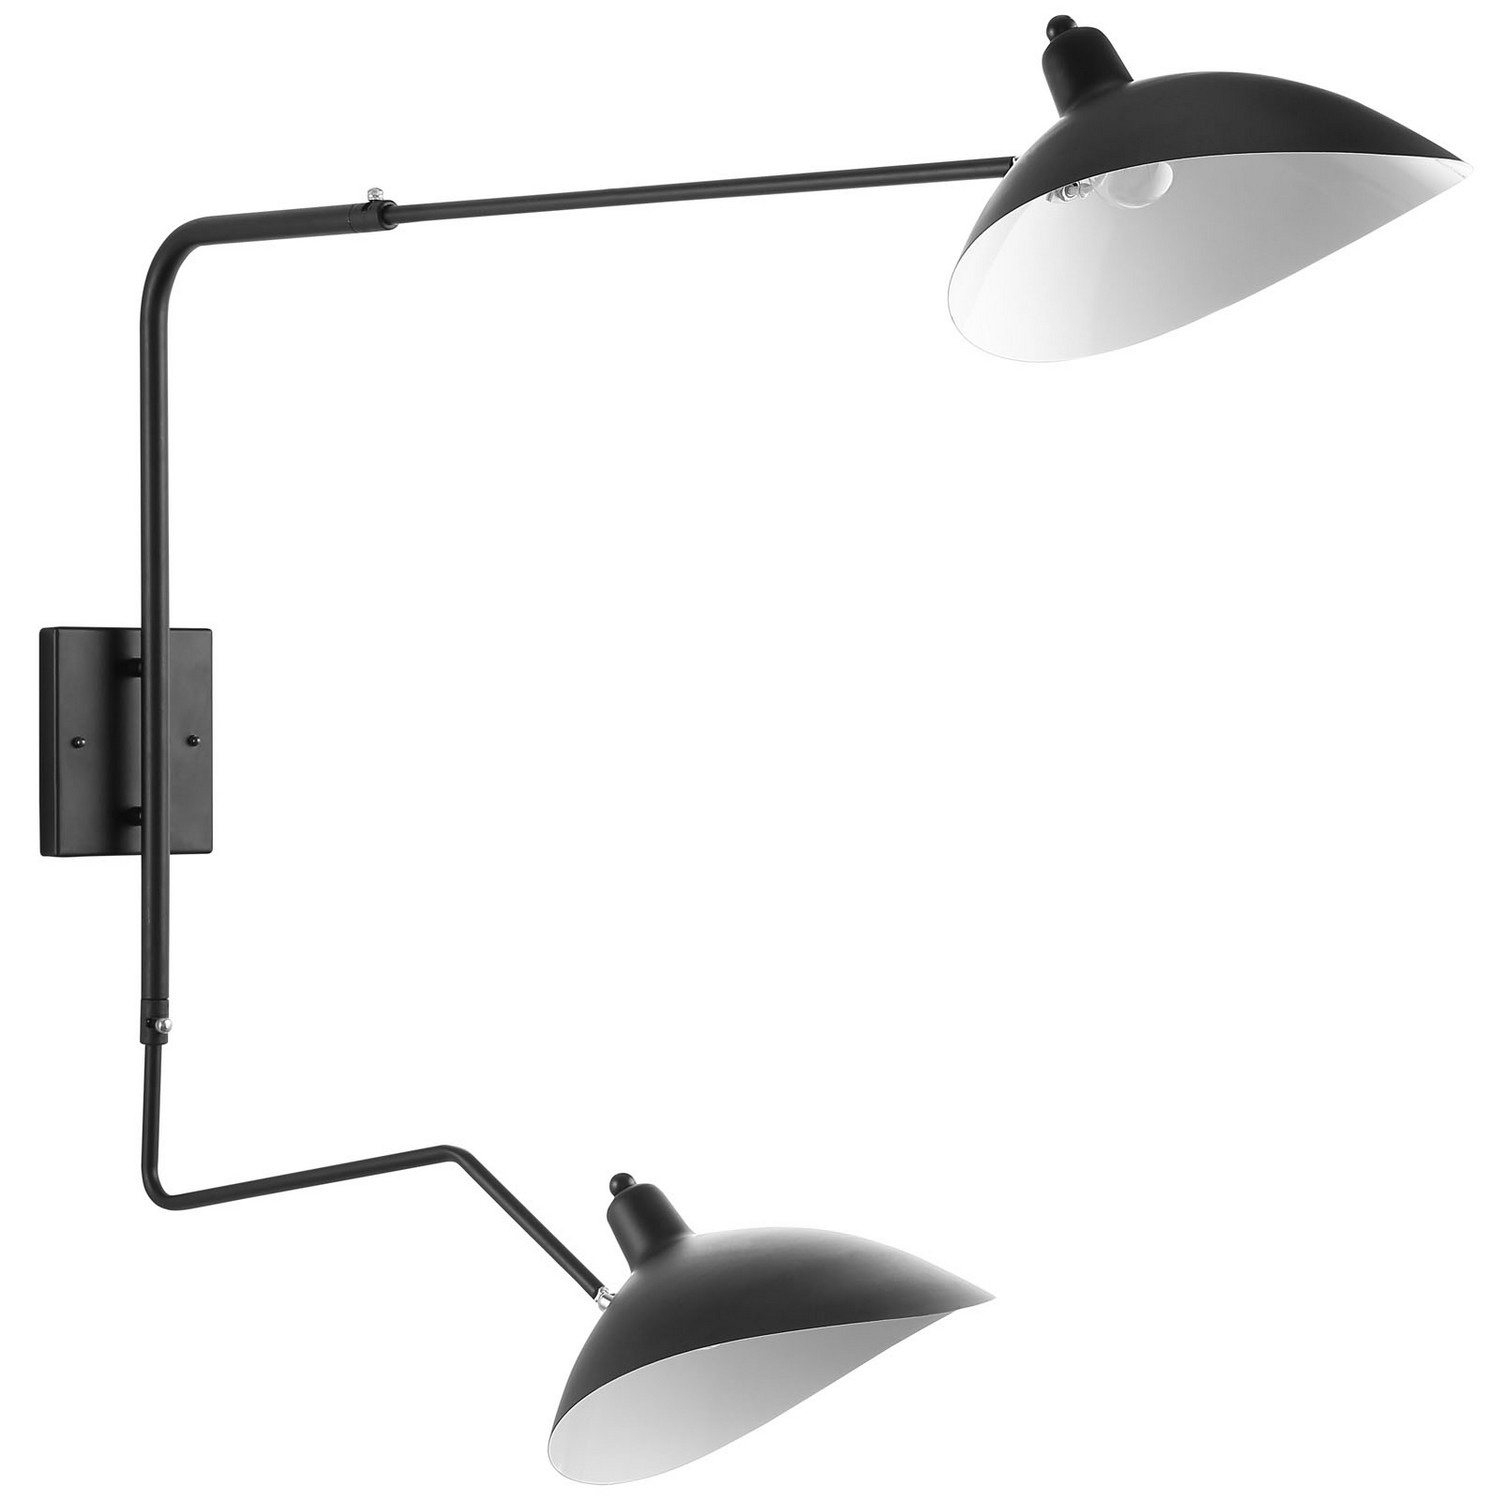 Modway View Double Fixture Wall Lamp - Black